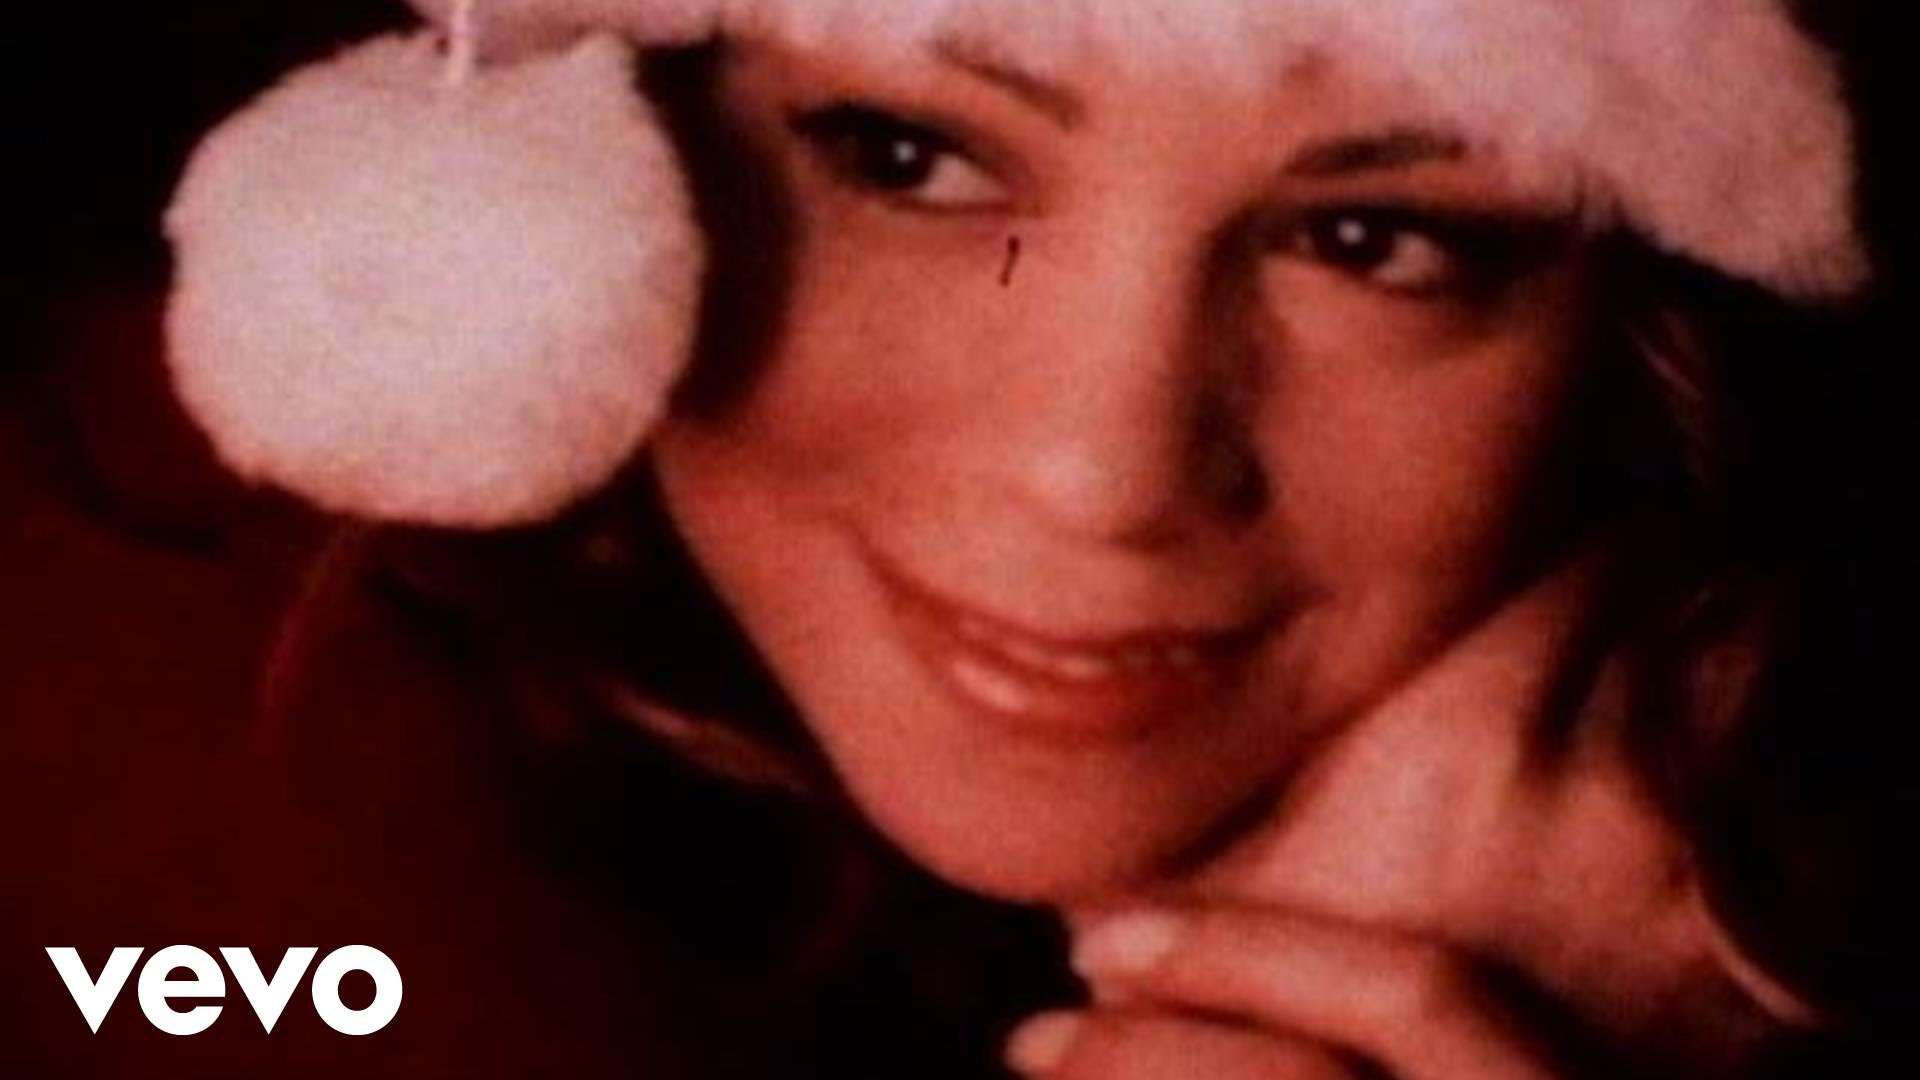 Mariah Carey - Miss You Most (At Christmas Time) - YouTube